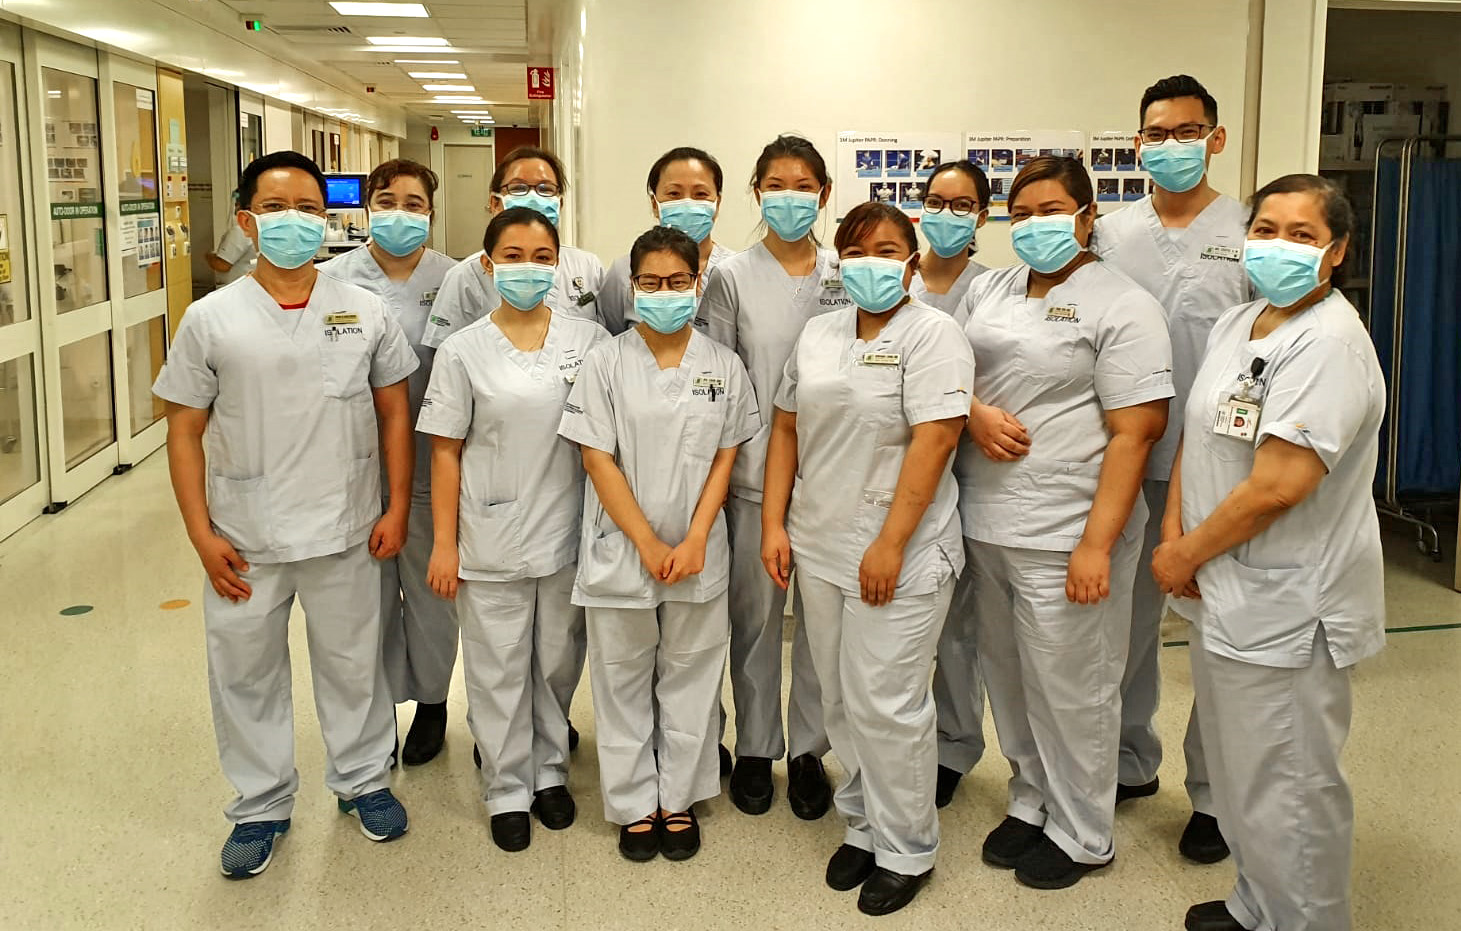 NC Syafiq (second from extreme right) has been working at Ward 68 for five years and manages a team of 15 nurses. He started out at Ward 73 (Internal Medicine) ten years ago.